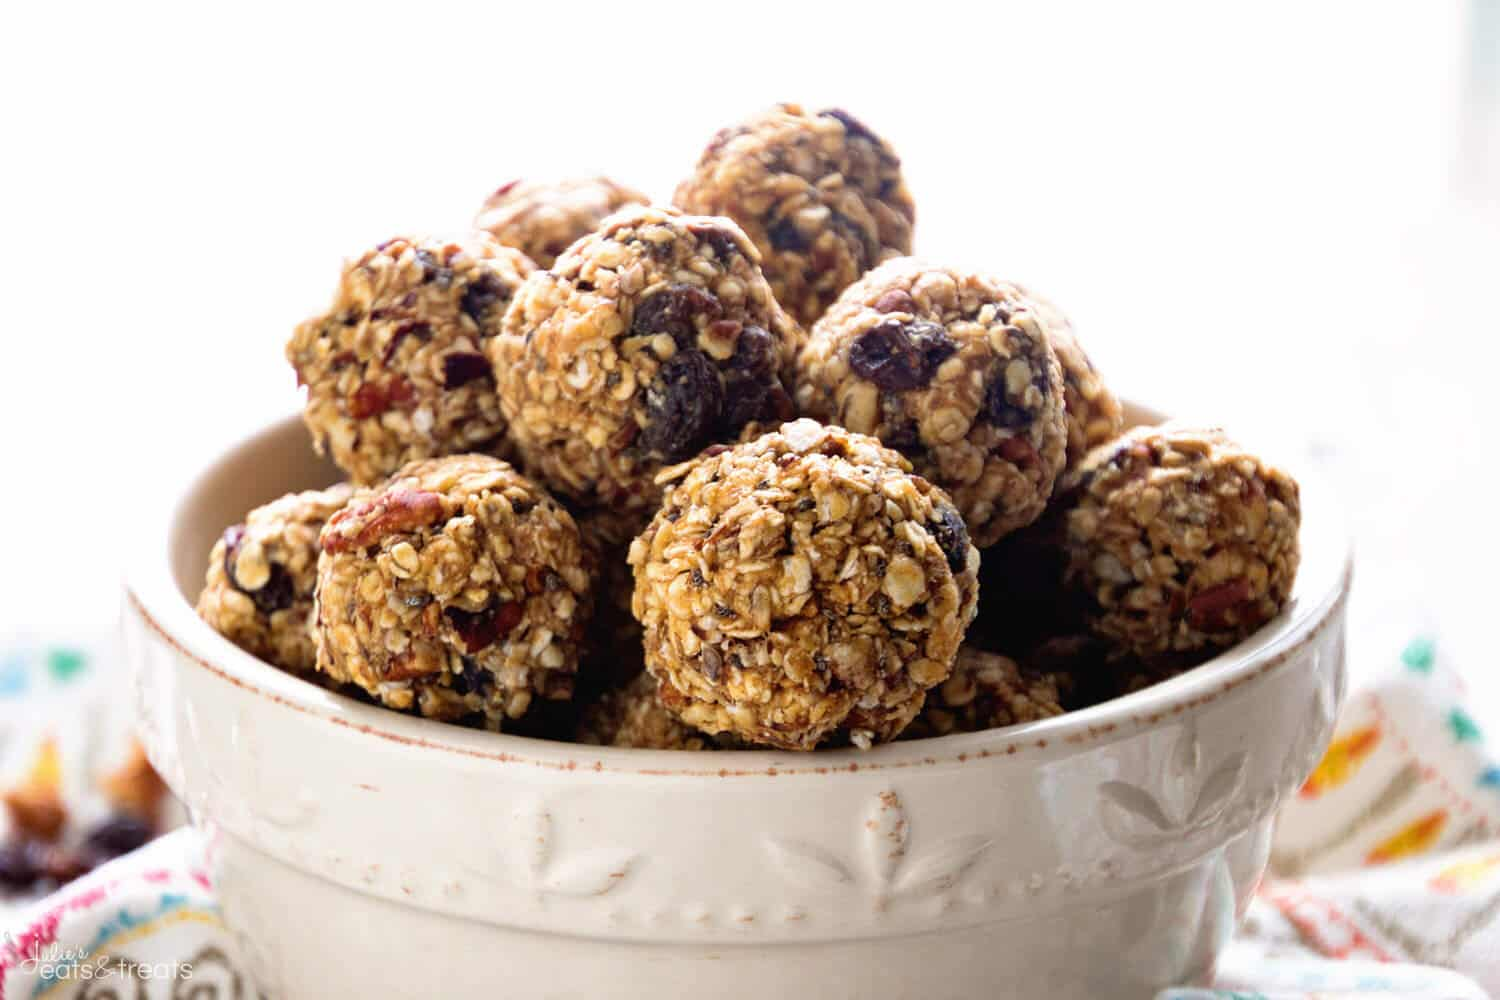 No Bake Oatmeal Raisin Energy Balls Recipe ~ Delicious Energy Balls That Taste Just like Oatmeal Raisin Cookies! Loaded with Oatmeal, Raisins, Pecans, Flaxseed, Chia Seeds and Spiced with Cinnamon!